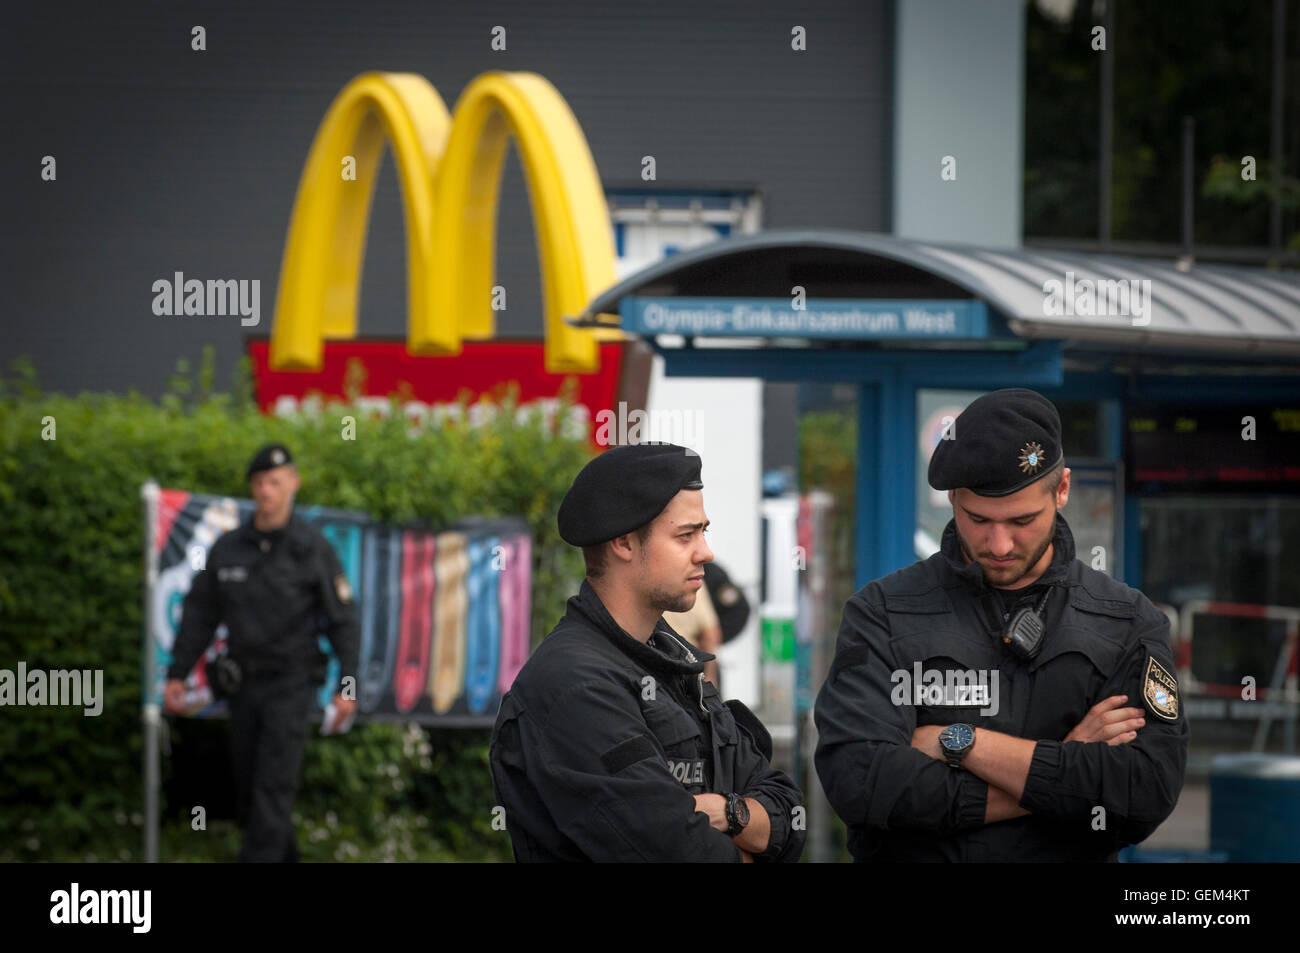 Police in front of the McDonalds where the shooting started at Hanauer Strasser, Munich, Germany. - Stock Image